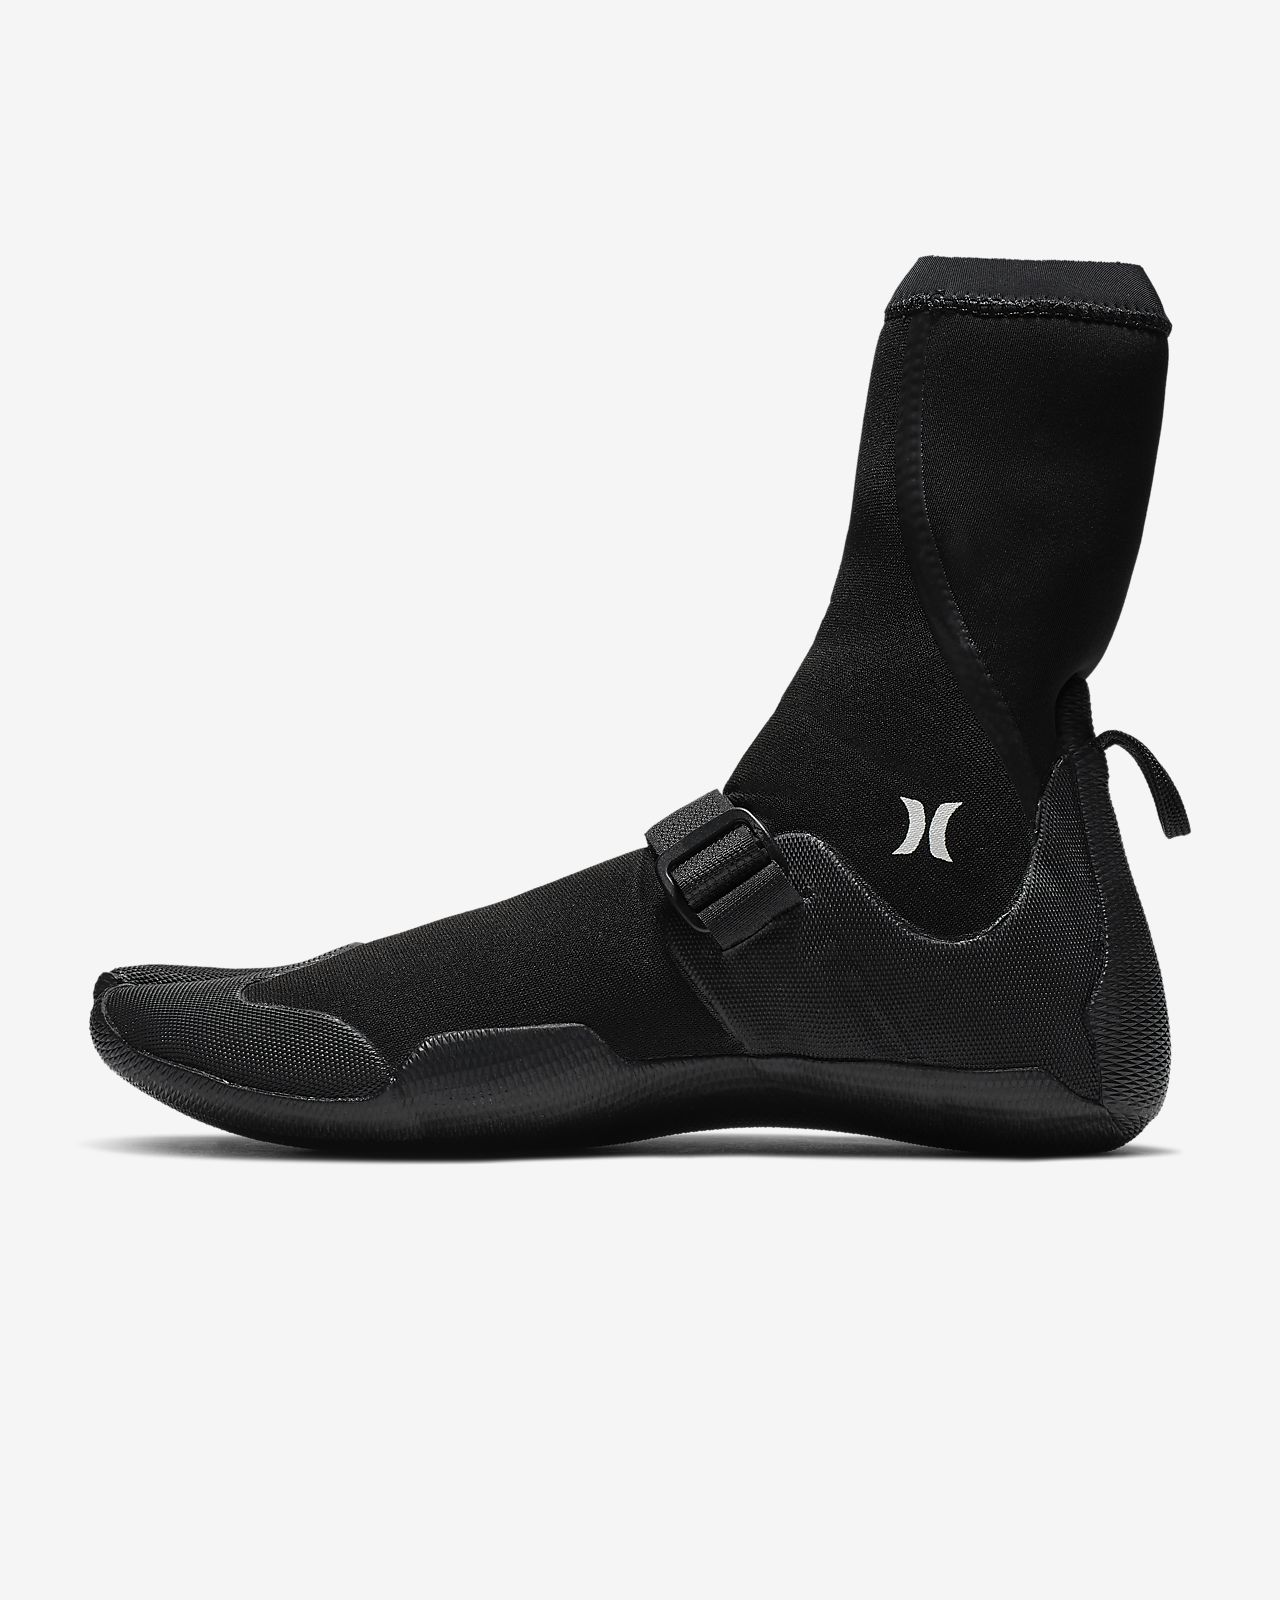 Hurley Advantage Plus 3/2mm Men's Wetsuit Boot